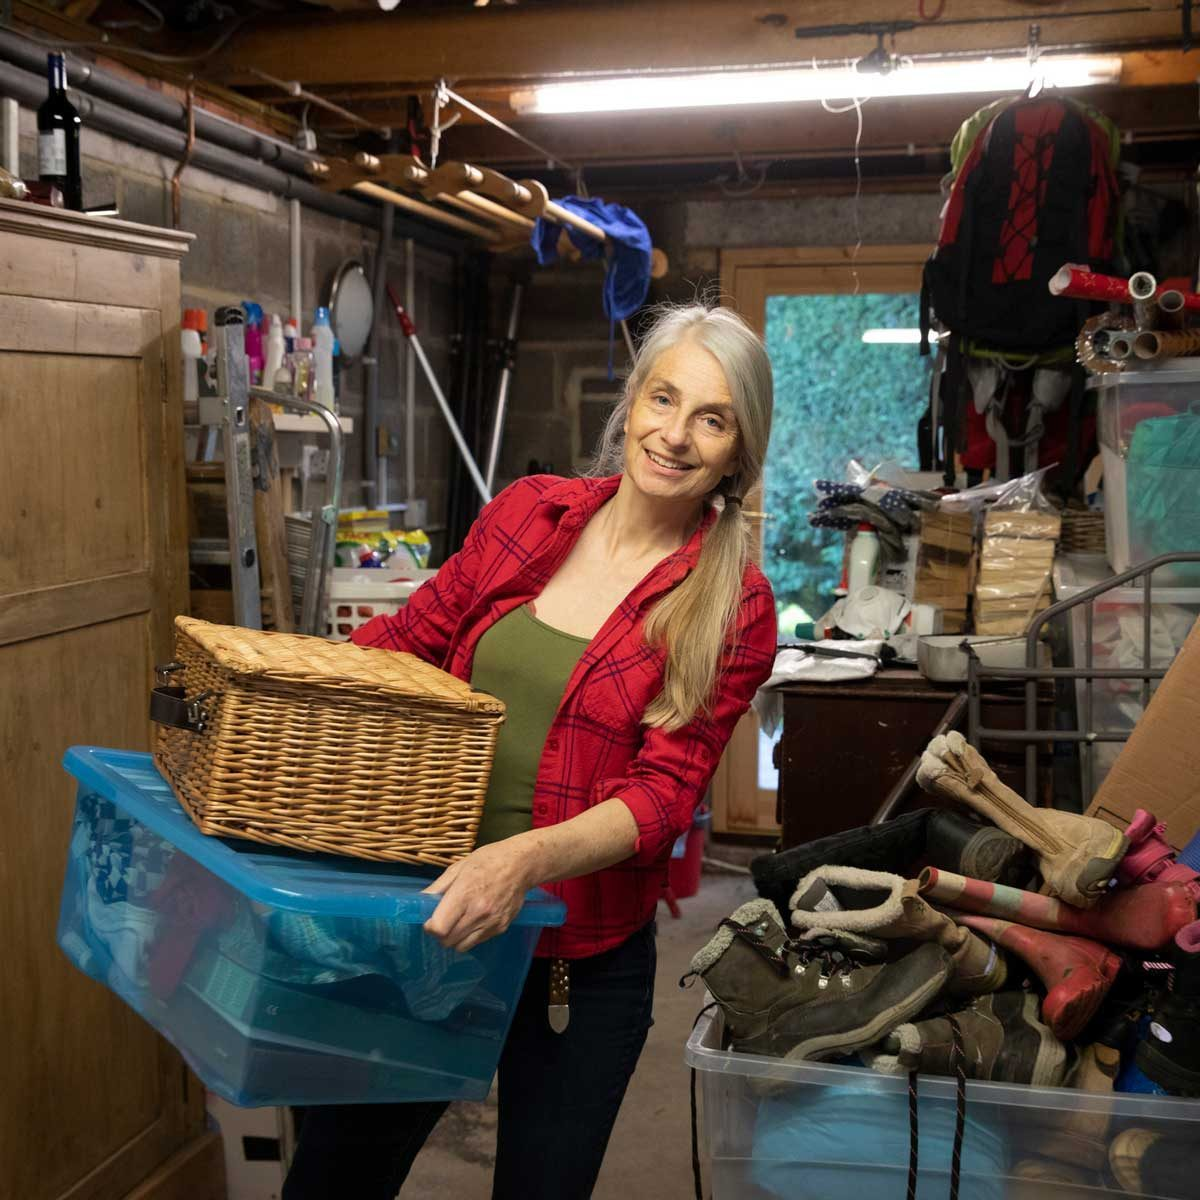 Woman sorting through garage clutter